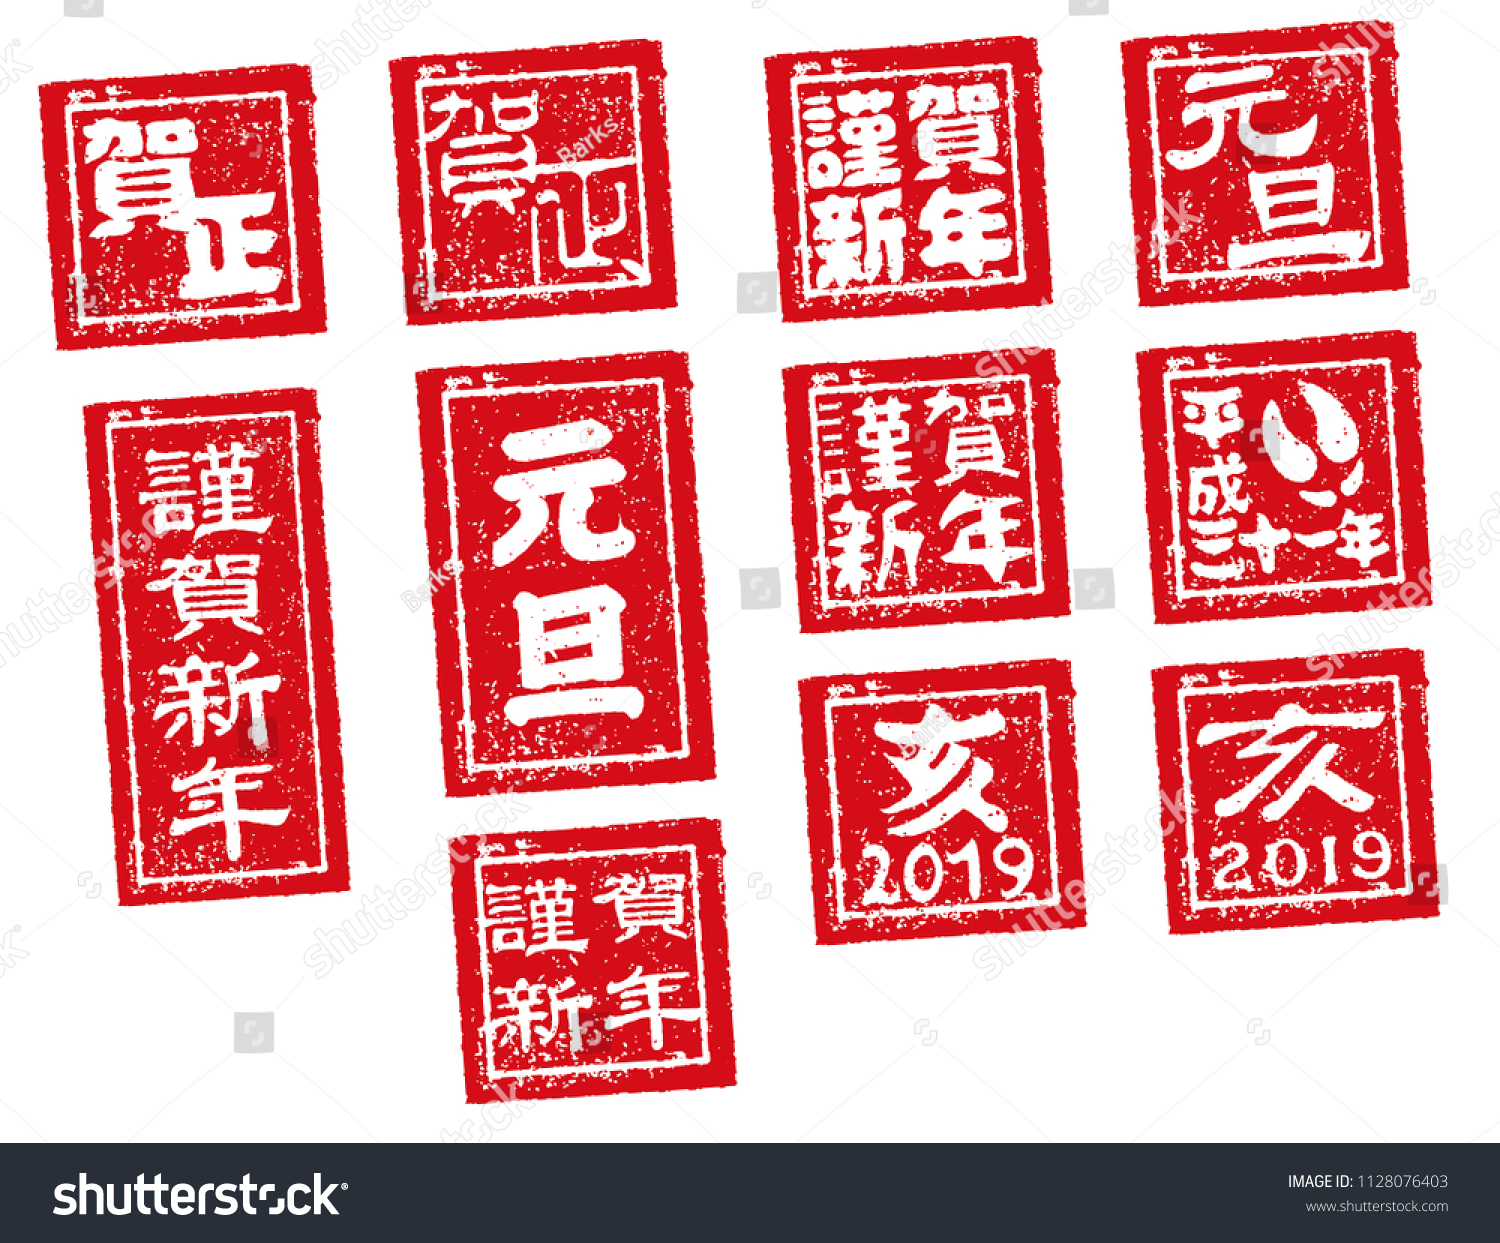 New Year Stamp Illustration Set 2019 Stock Vector Royalty Free